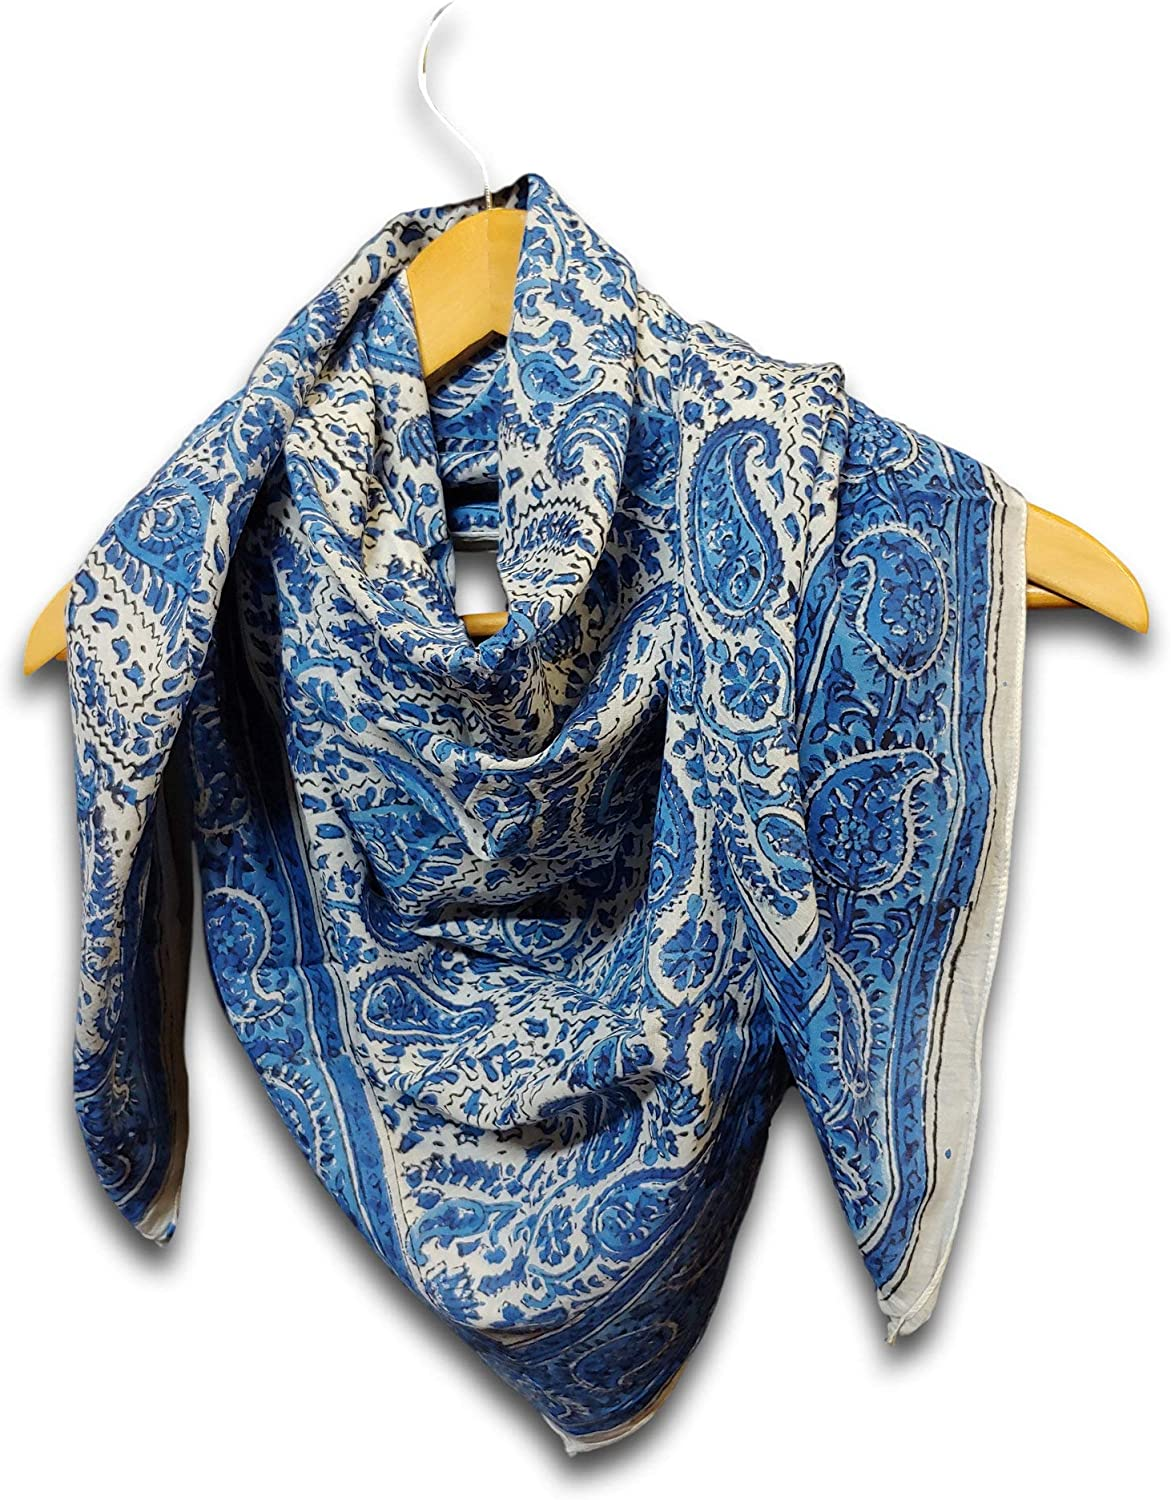 Large Cotton Scarfs for Women Lightweight Soft Sheer Neck Scarf Head Scarf Block Print Summer Floral Scarf Bandanas for Women Handmade Blue Fashion Scarf Square Shawl Stole Wrap (Blue, 42 x 42 inches)